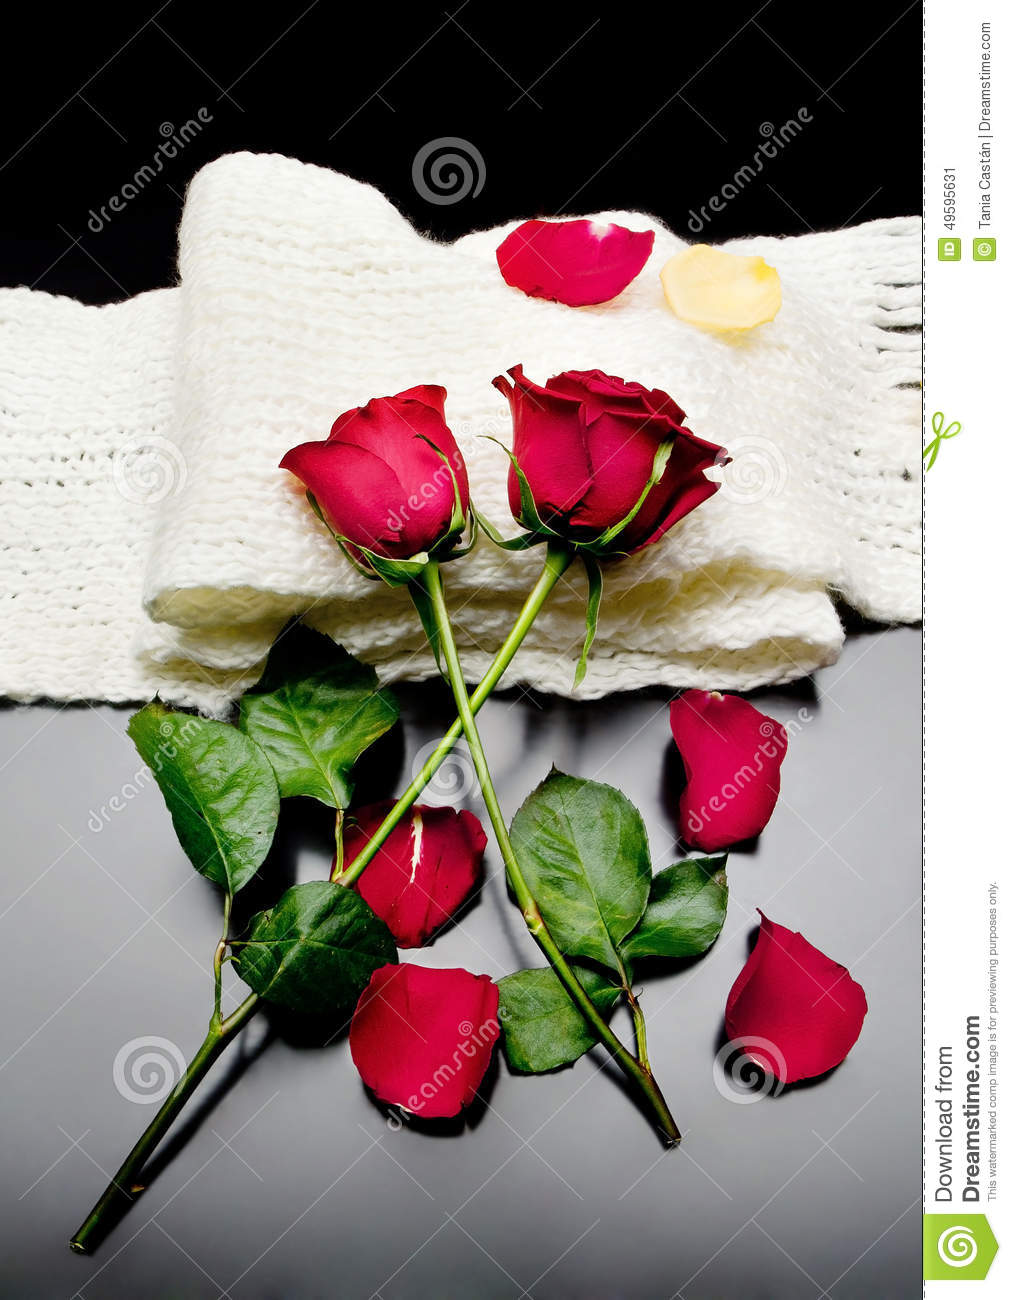 Two Red Roses Together With Red Petals On A Black ...